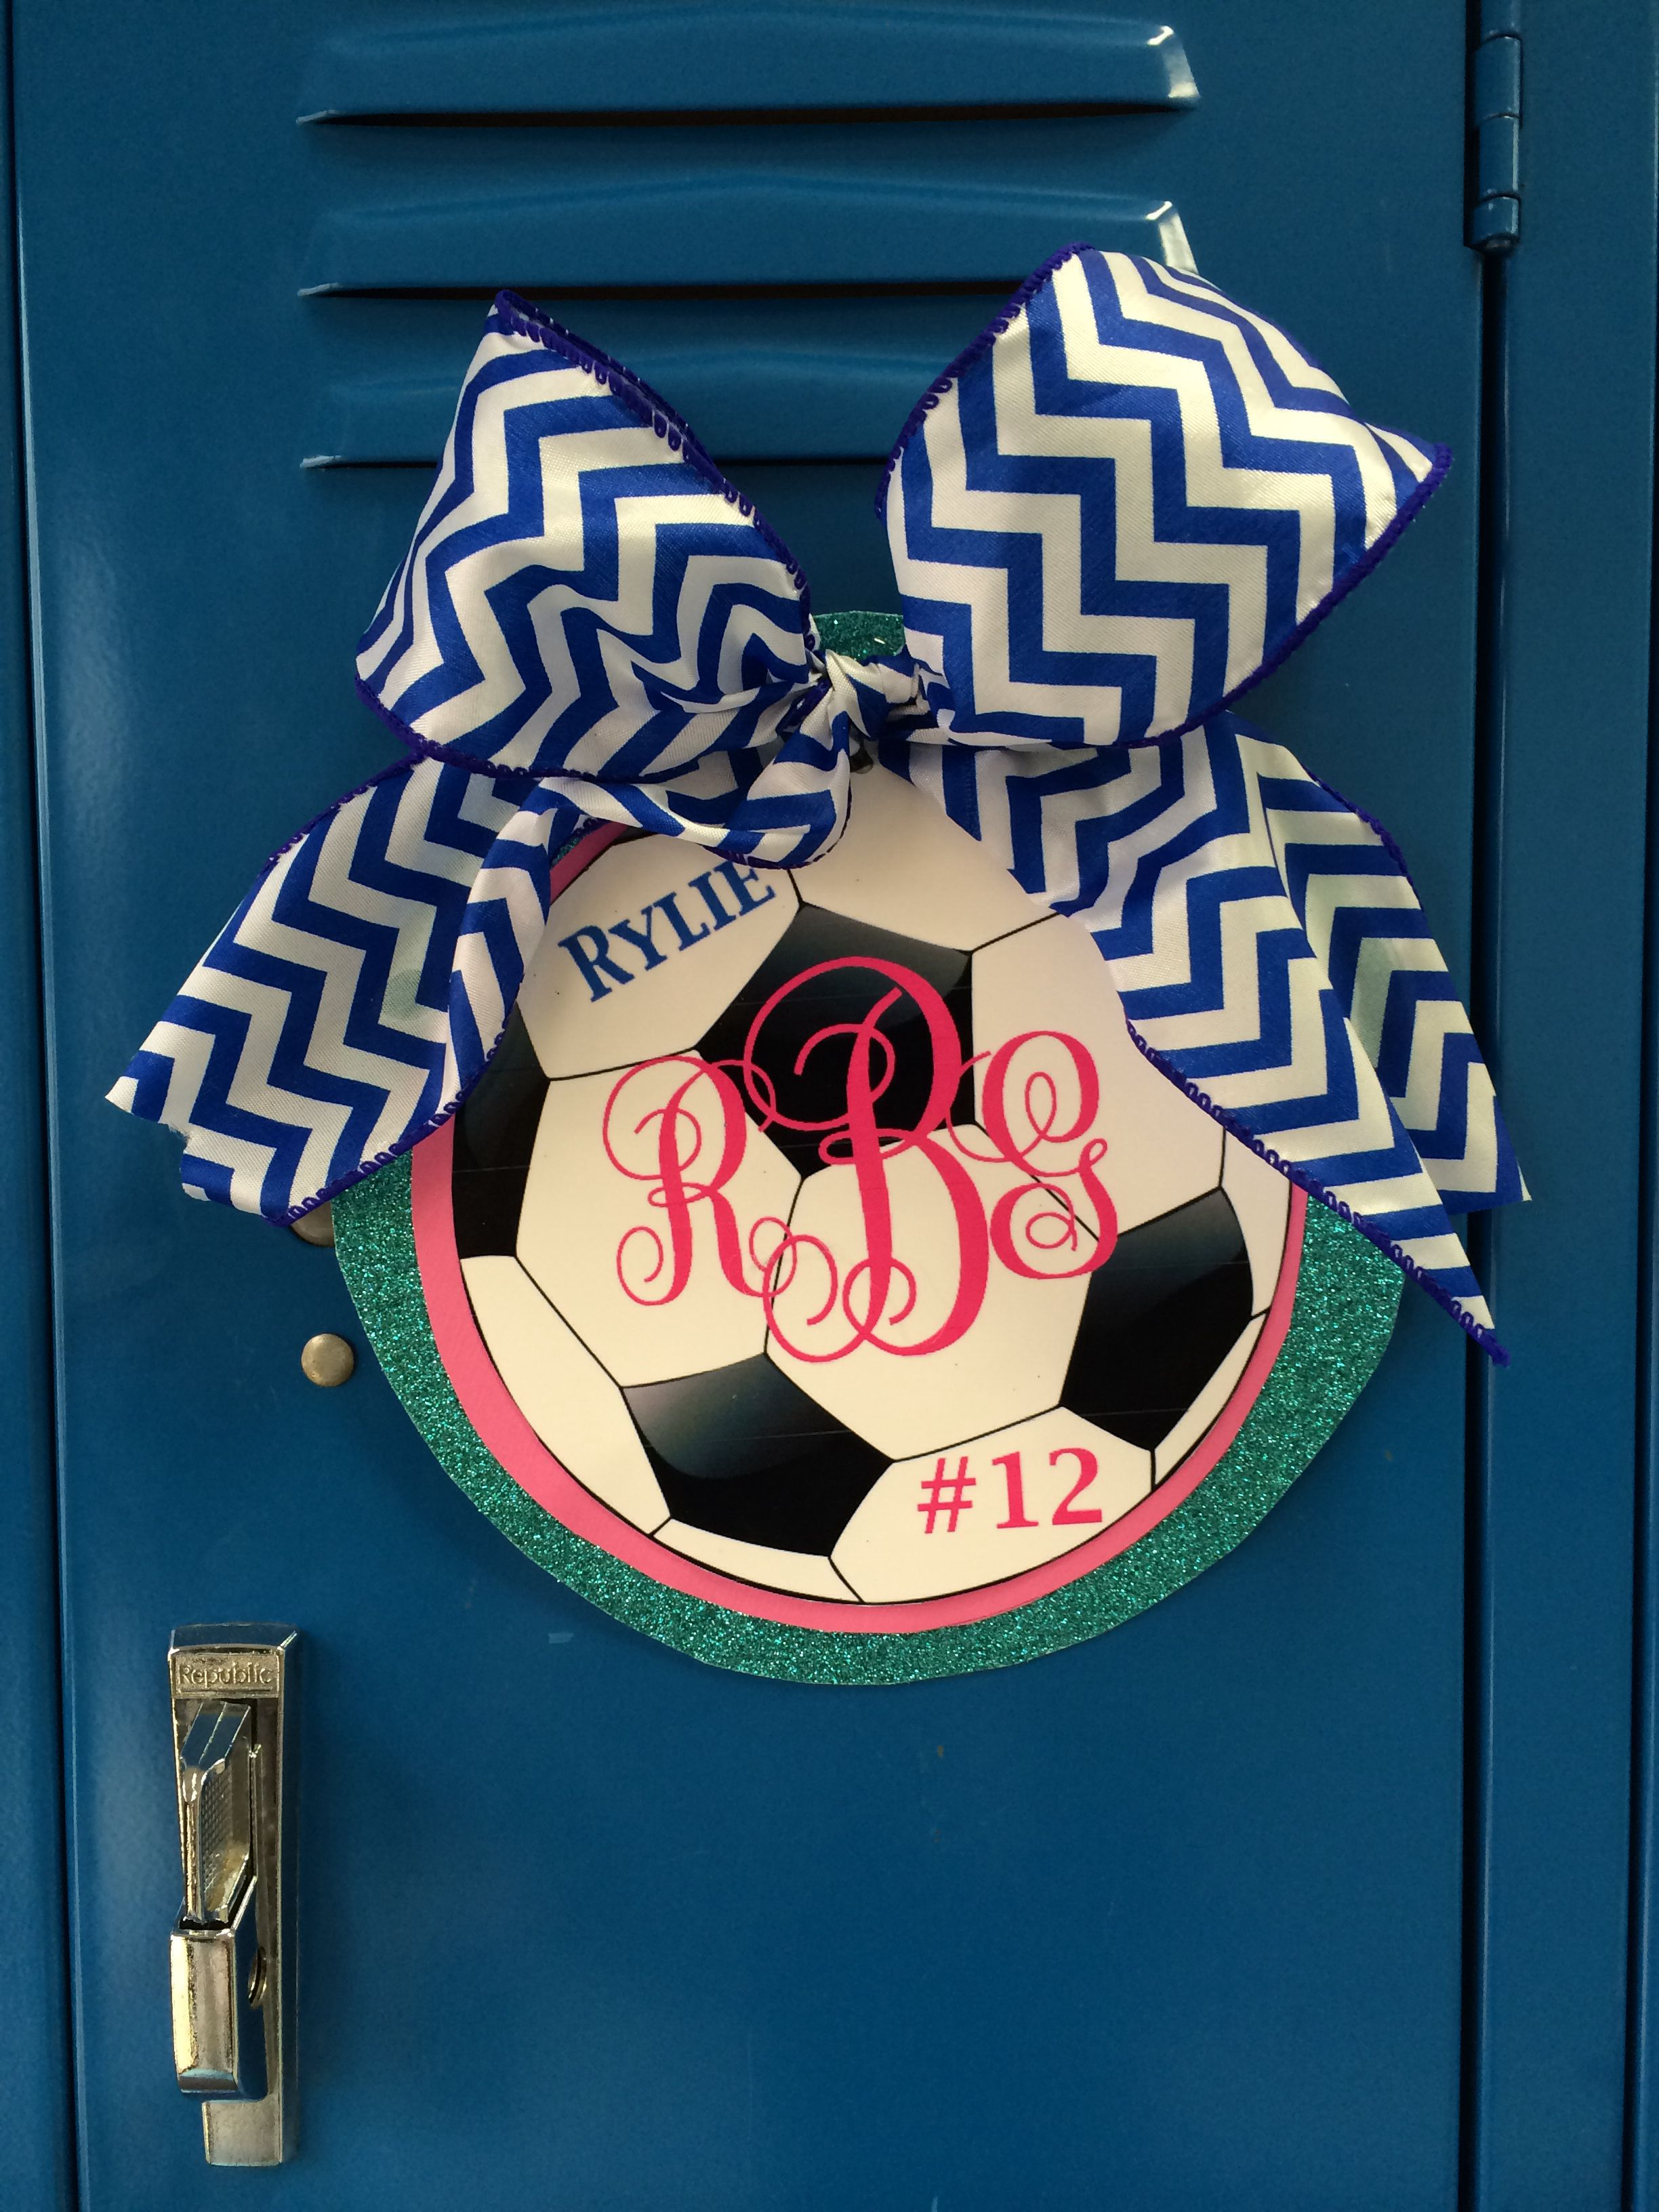 Sports Locker Name Tag With Monogram For Soccer Basketball Volleyball Etc Volleyball Locker Volleyball Locker Decorations Sports Locker Decorations